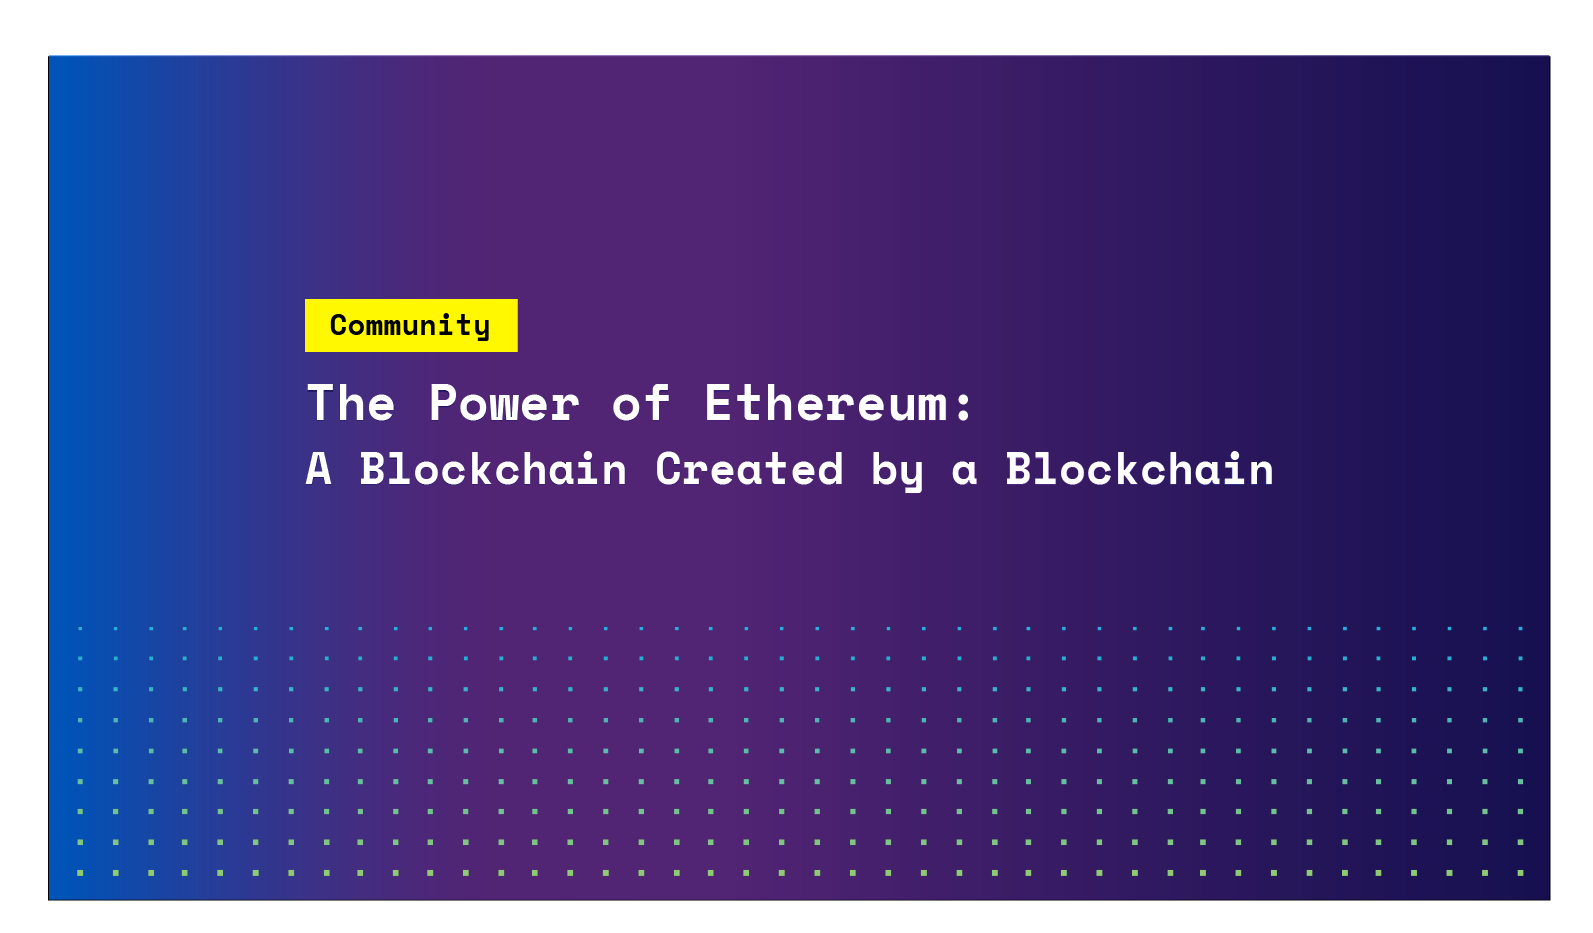 The Power of Ethereum: A Blockchain Created by a Blockchain